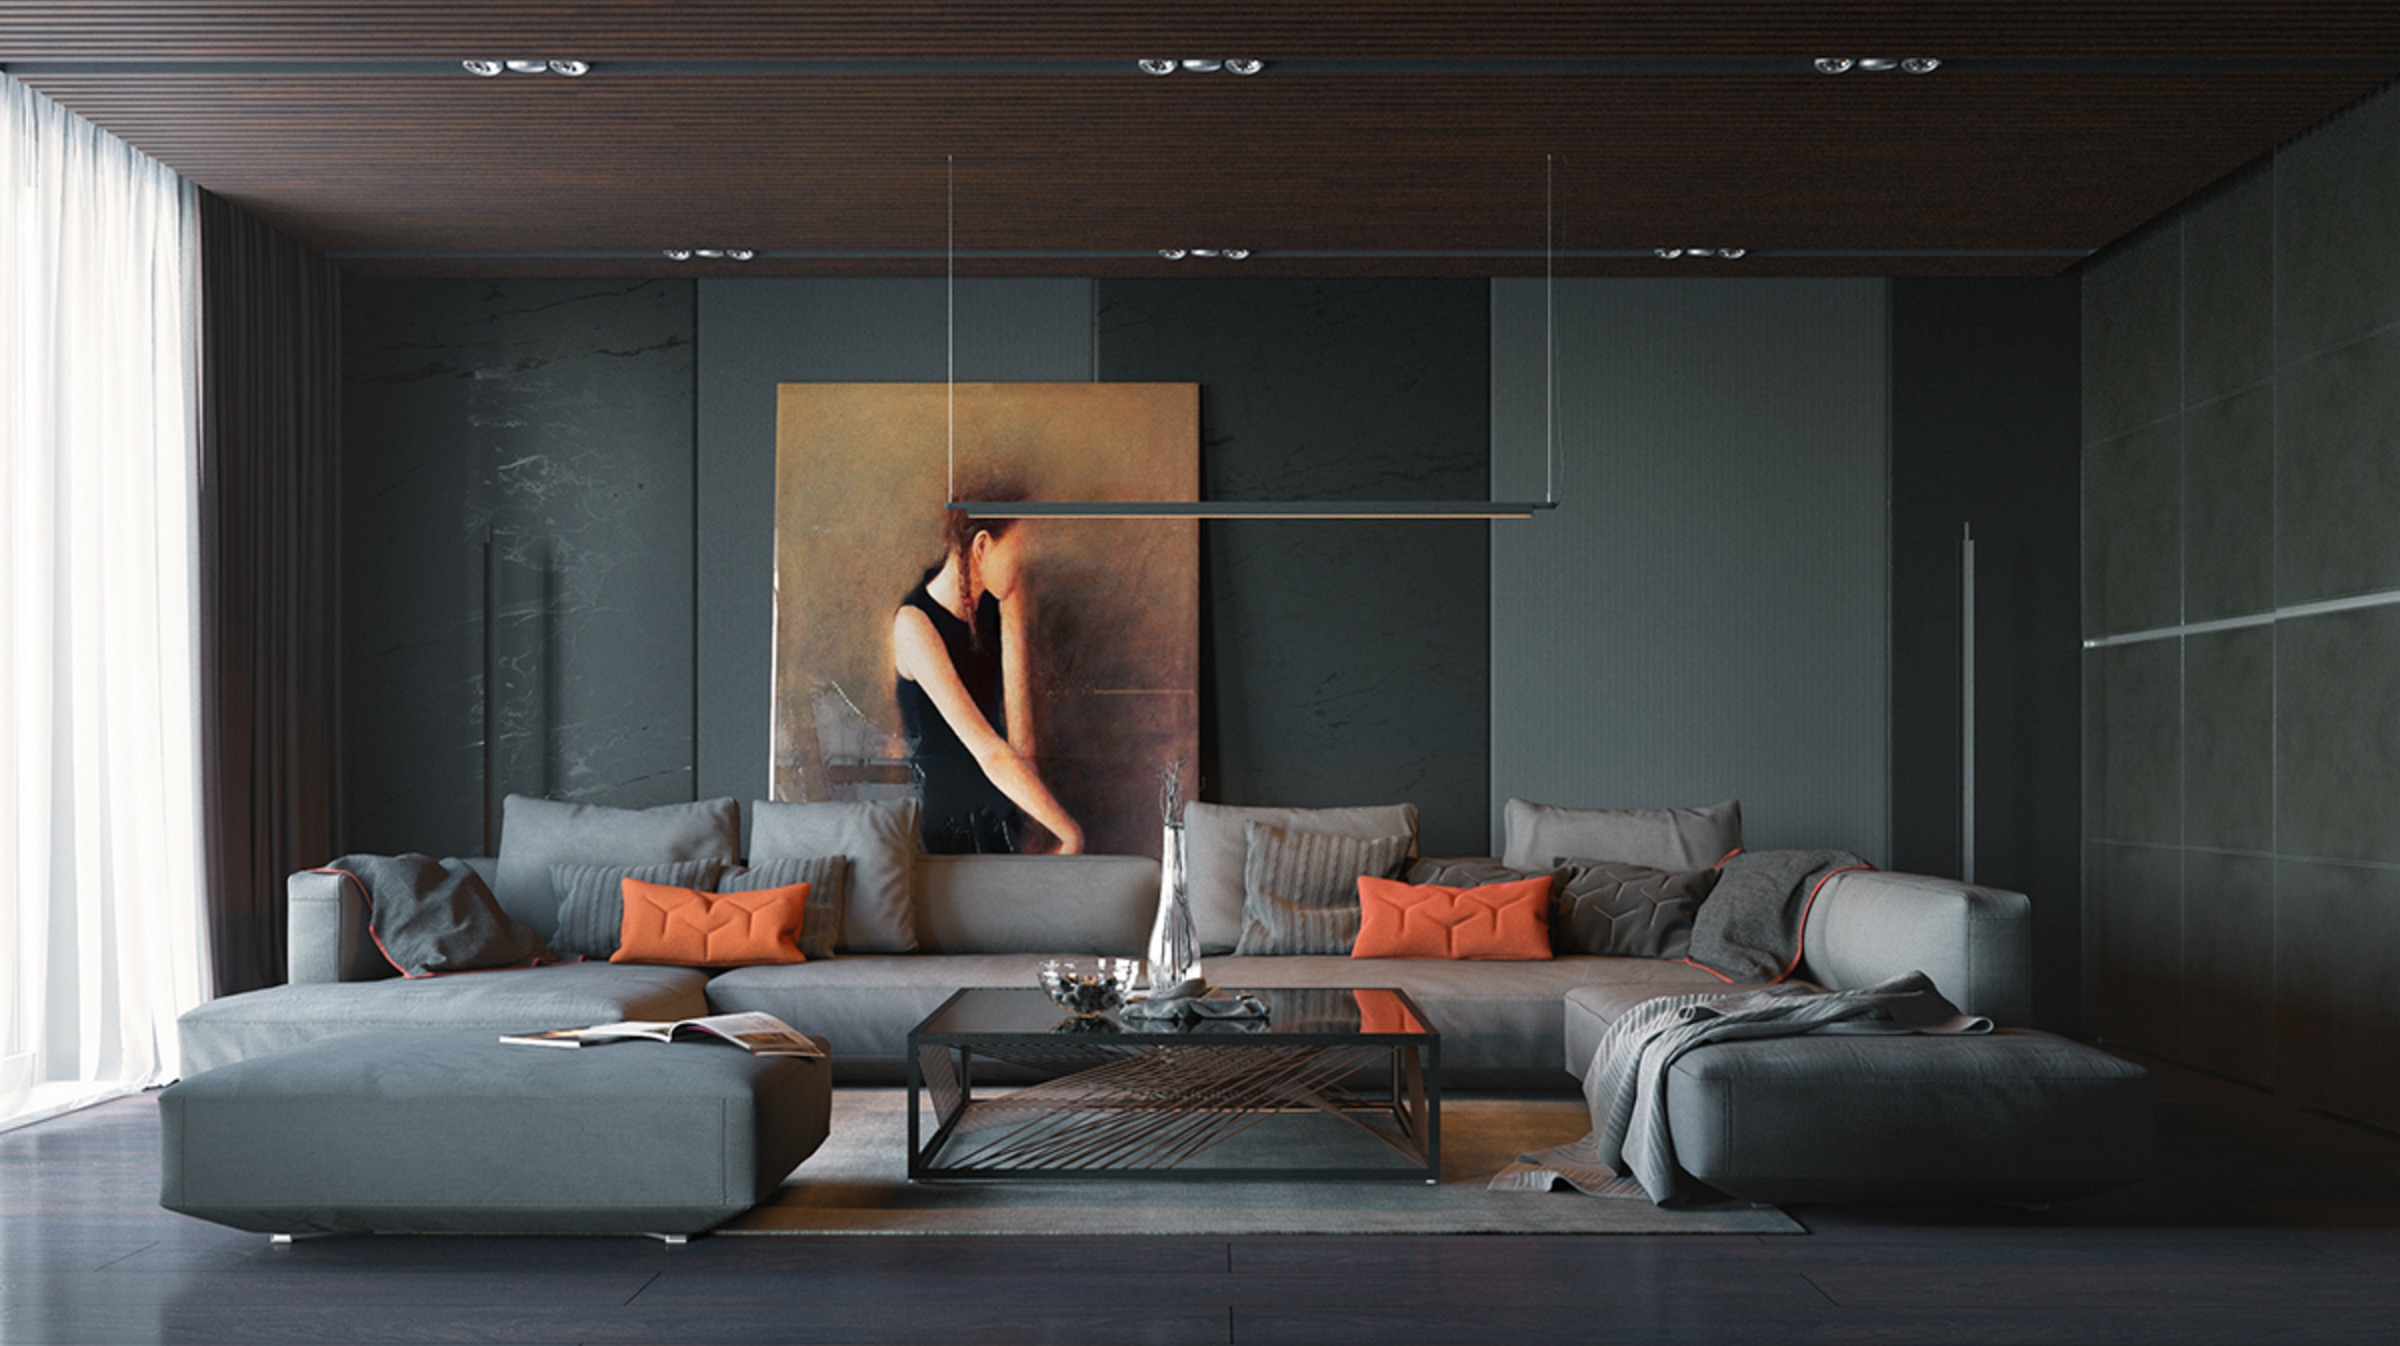 large wall art for living rooms ideas inspiration - Design Interior Ideas